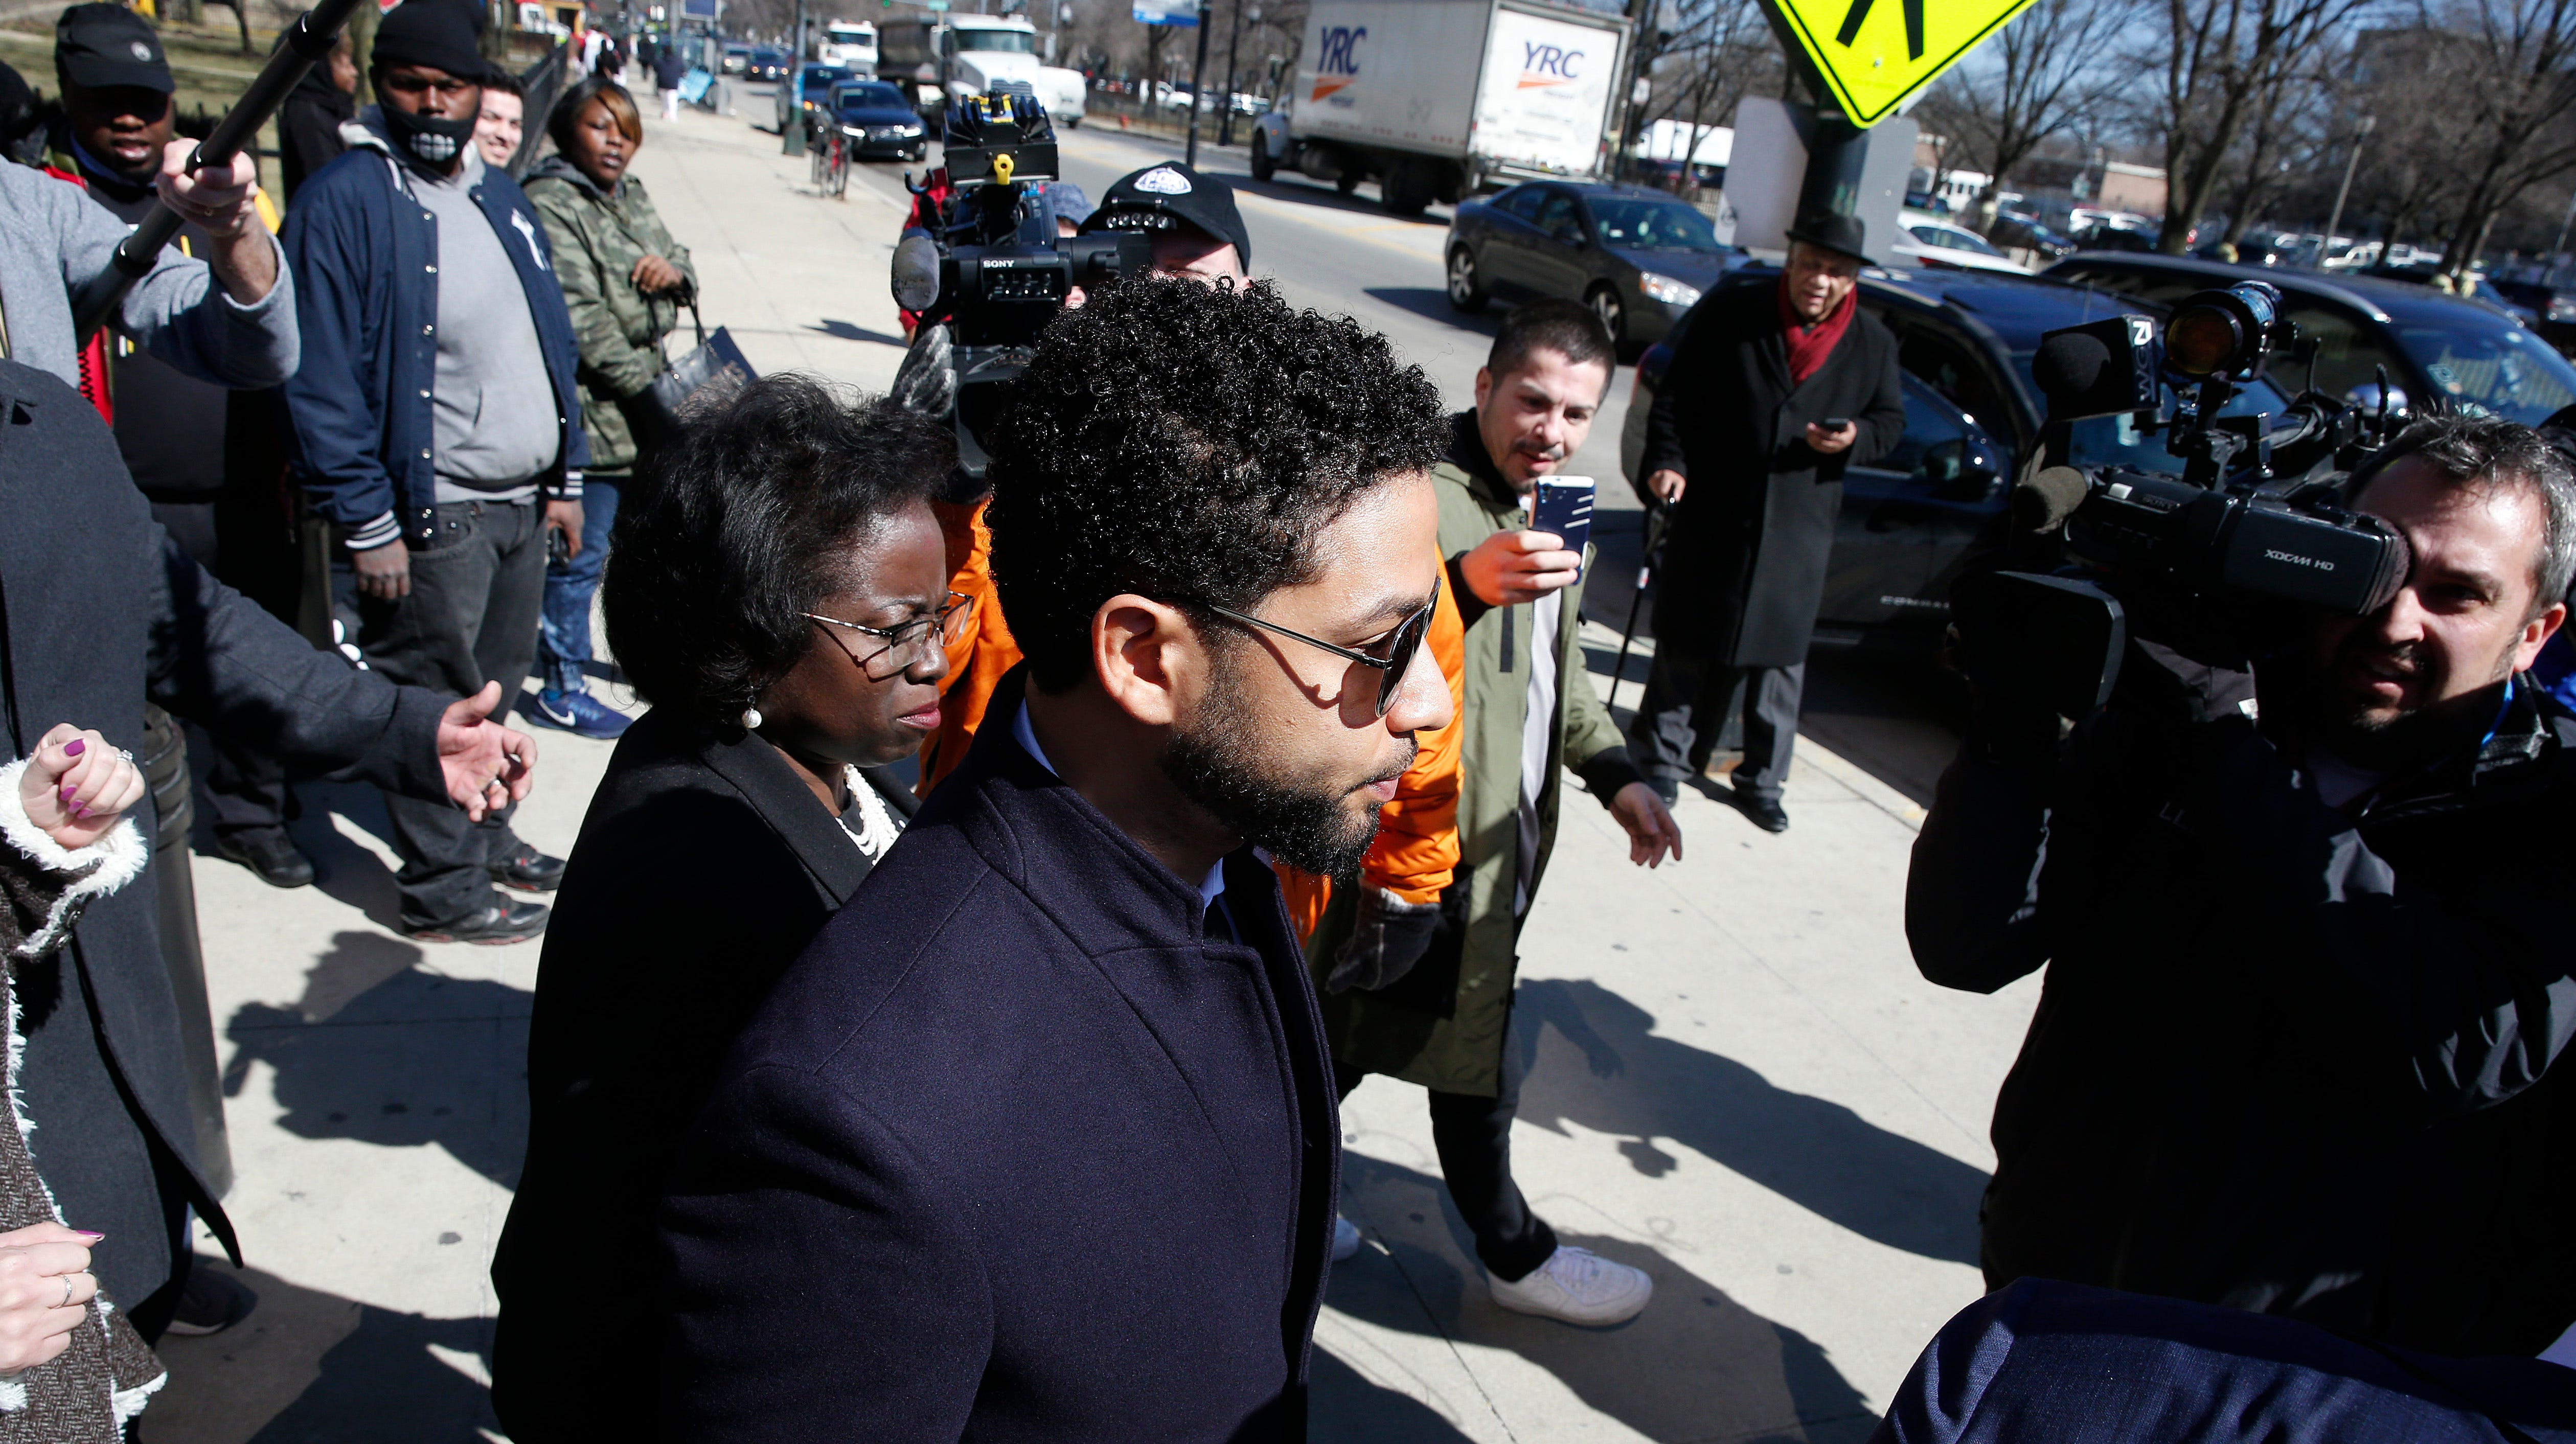 Actor Jussie Smollett leaves after his court appearance at Leighton Courthouse on March 26, 2019 in Chicago, Illinois. This morning in court it was announced that all charges were dropped against the actor.